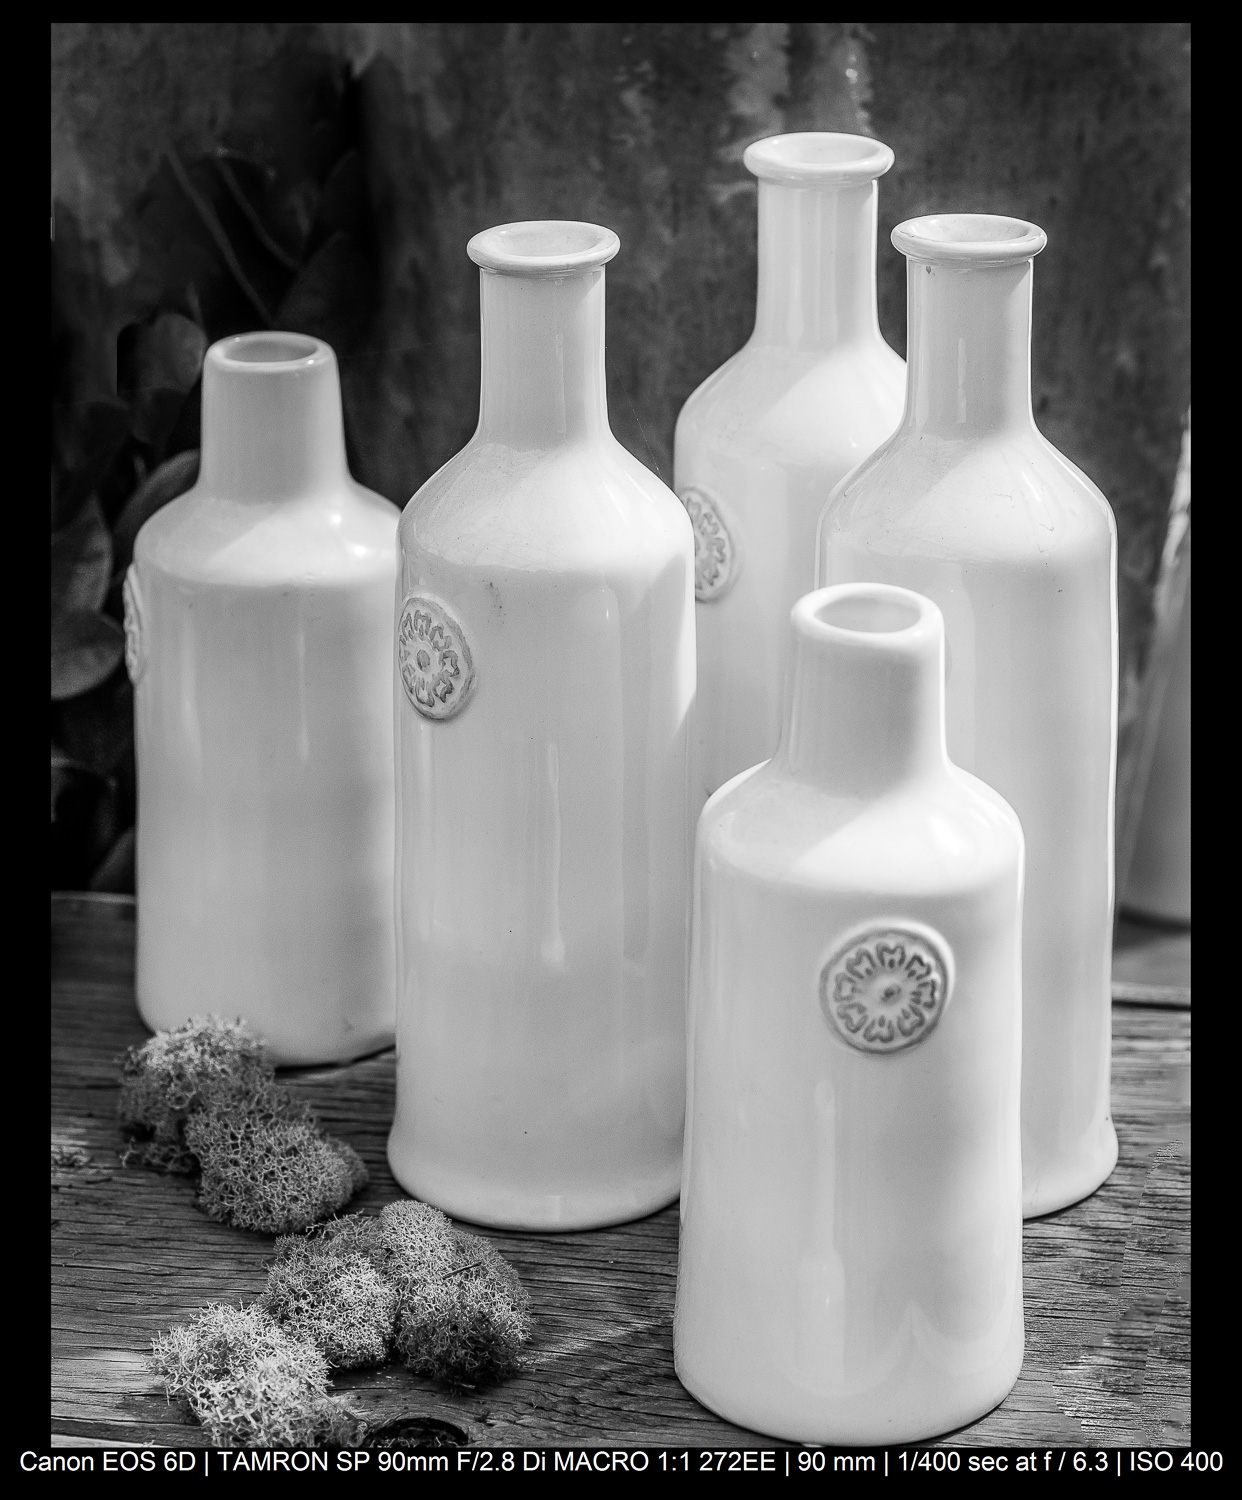 the rule of odds in photography - five bottles